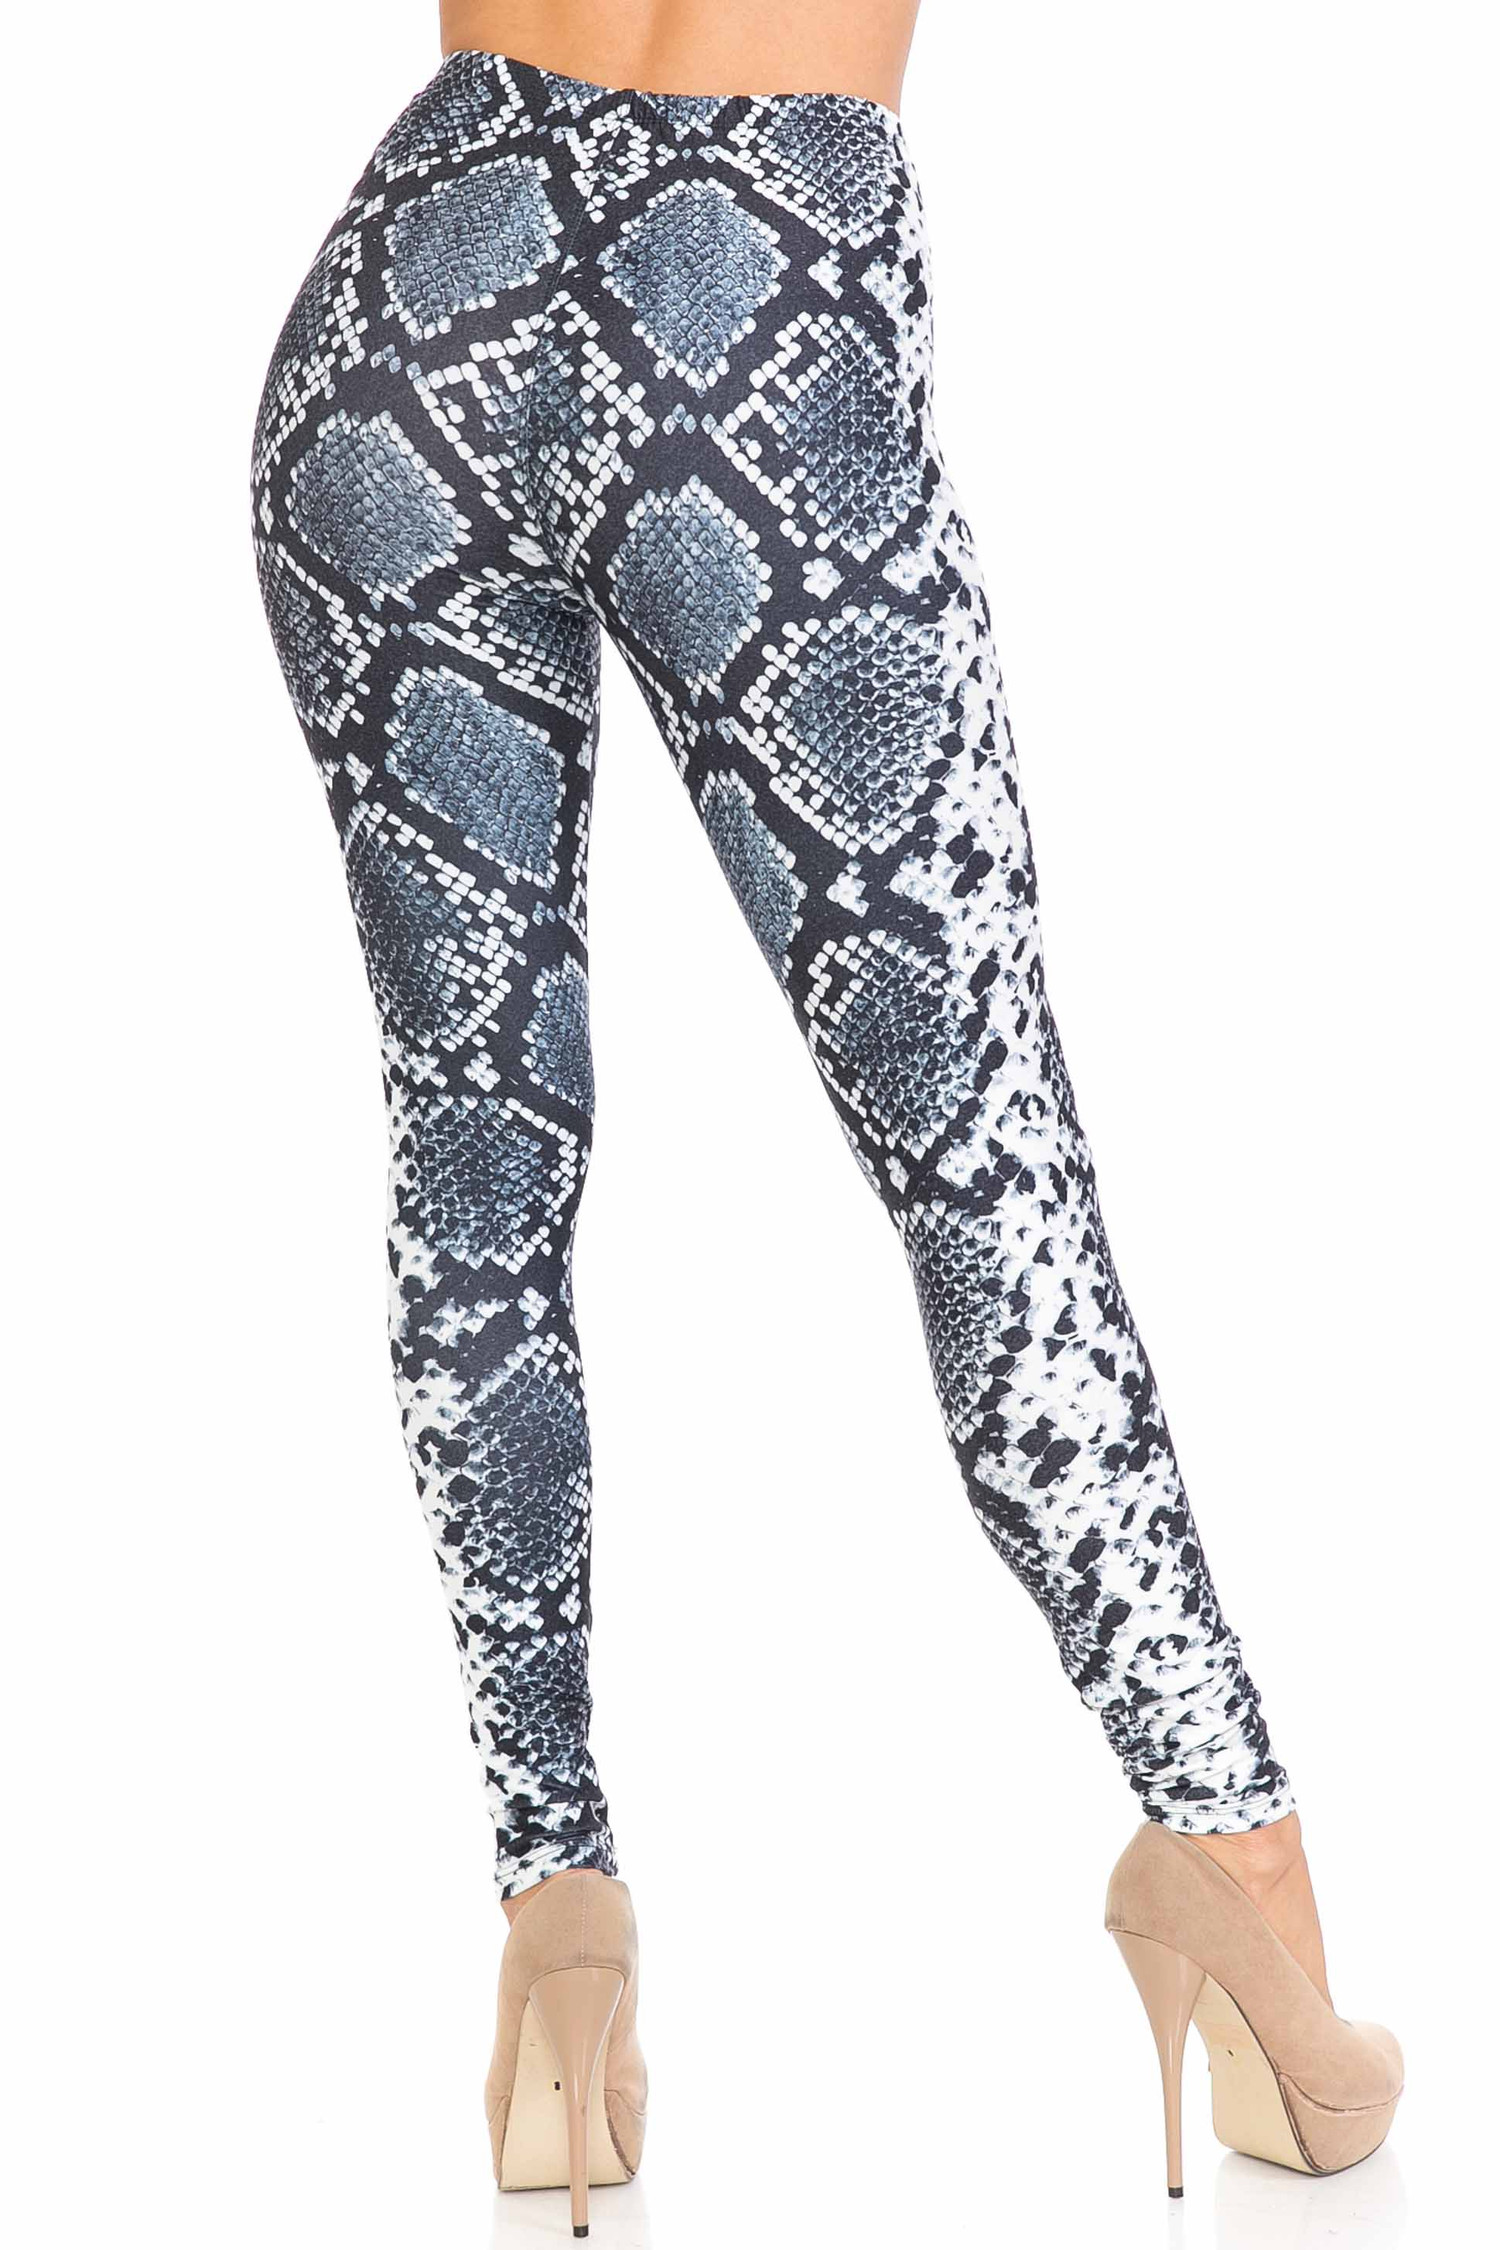 Back view of our sexy Creamy Soft Steel Blue Boa Leggings - USA Fashion™ with a sassy all over reptile print.